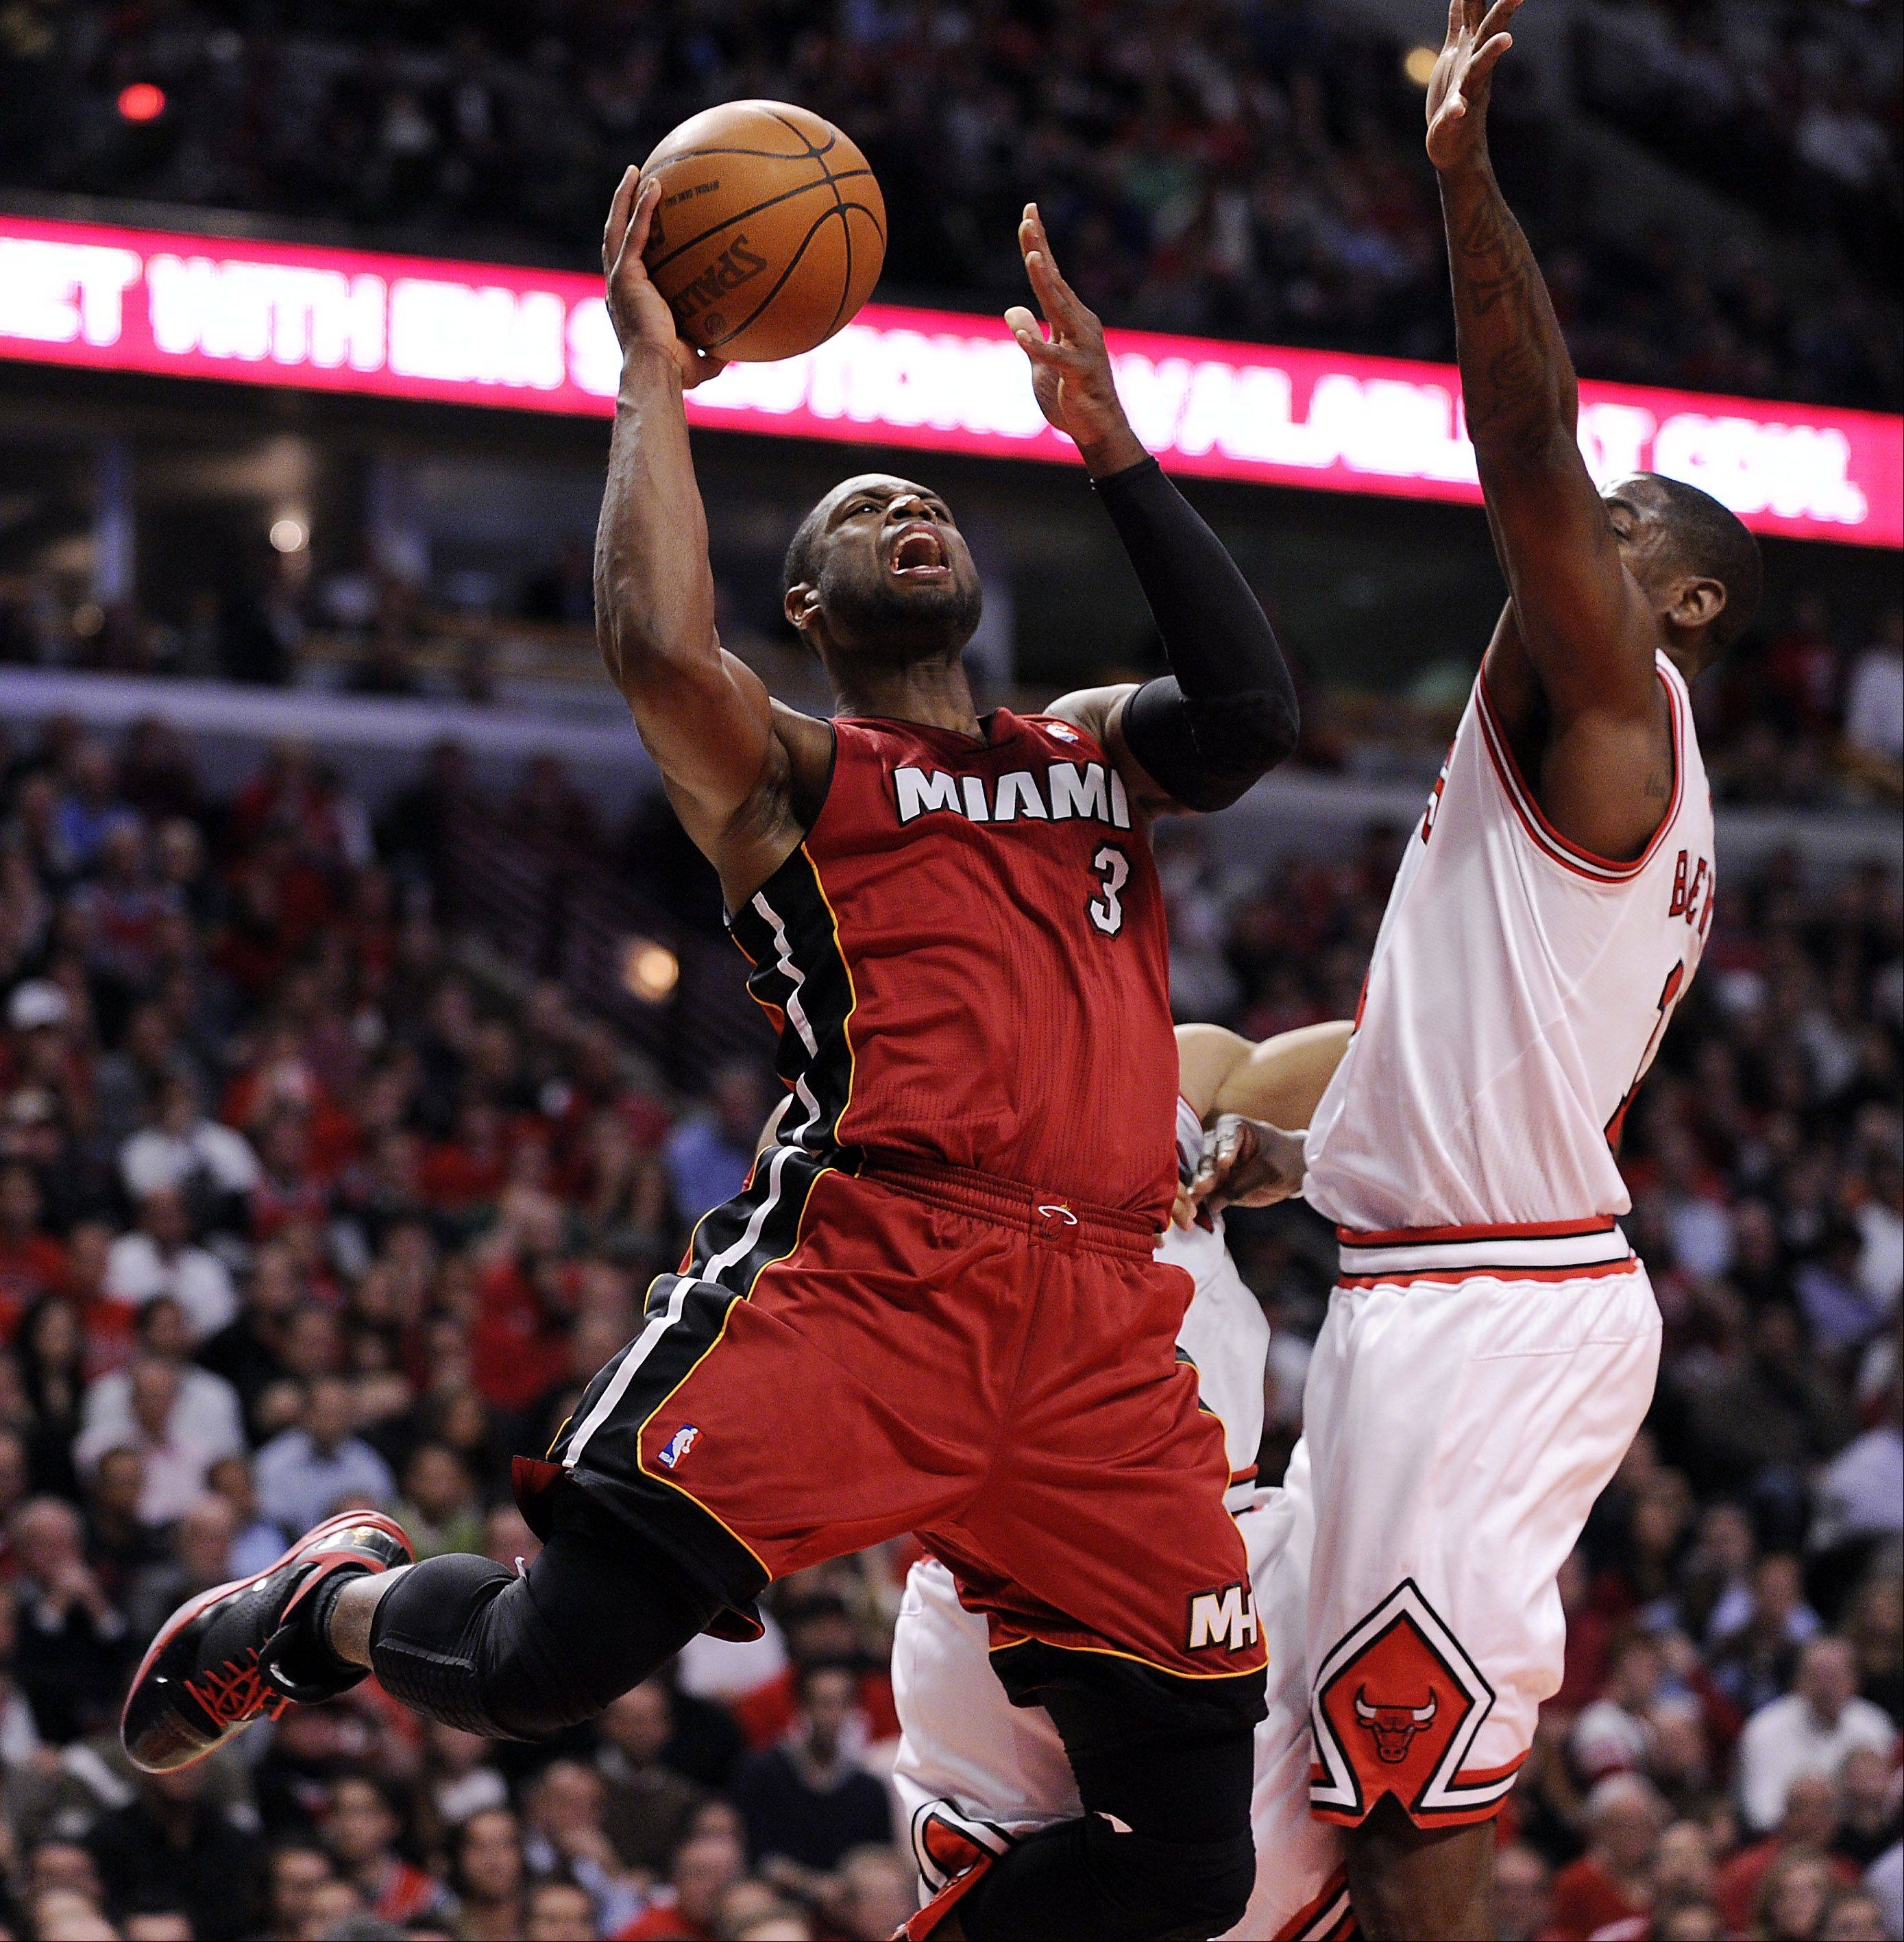 The Heat's Dwyane Wade goes up against Bulls' Ronnie Brewer in the fourth quarter.